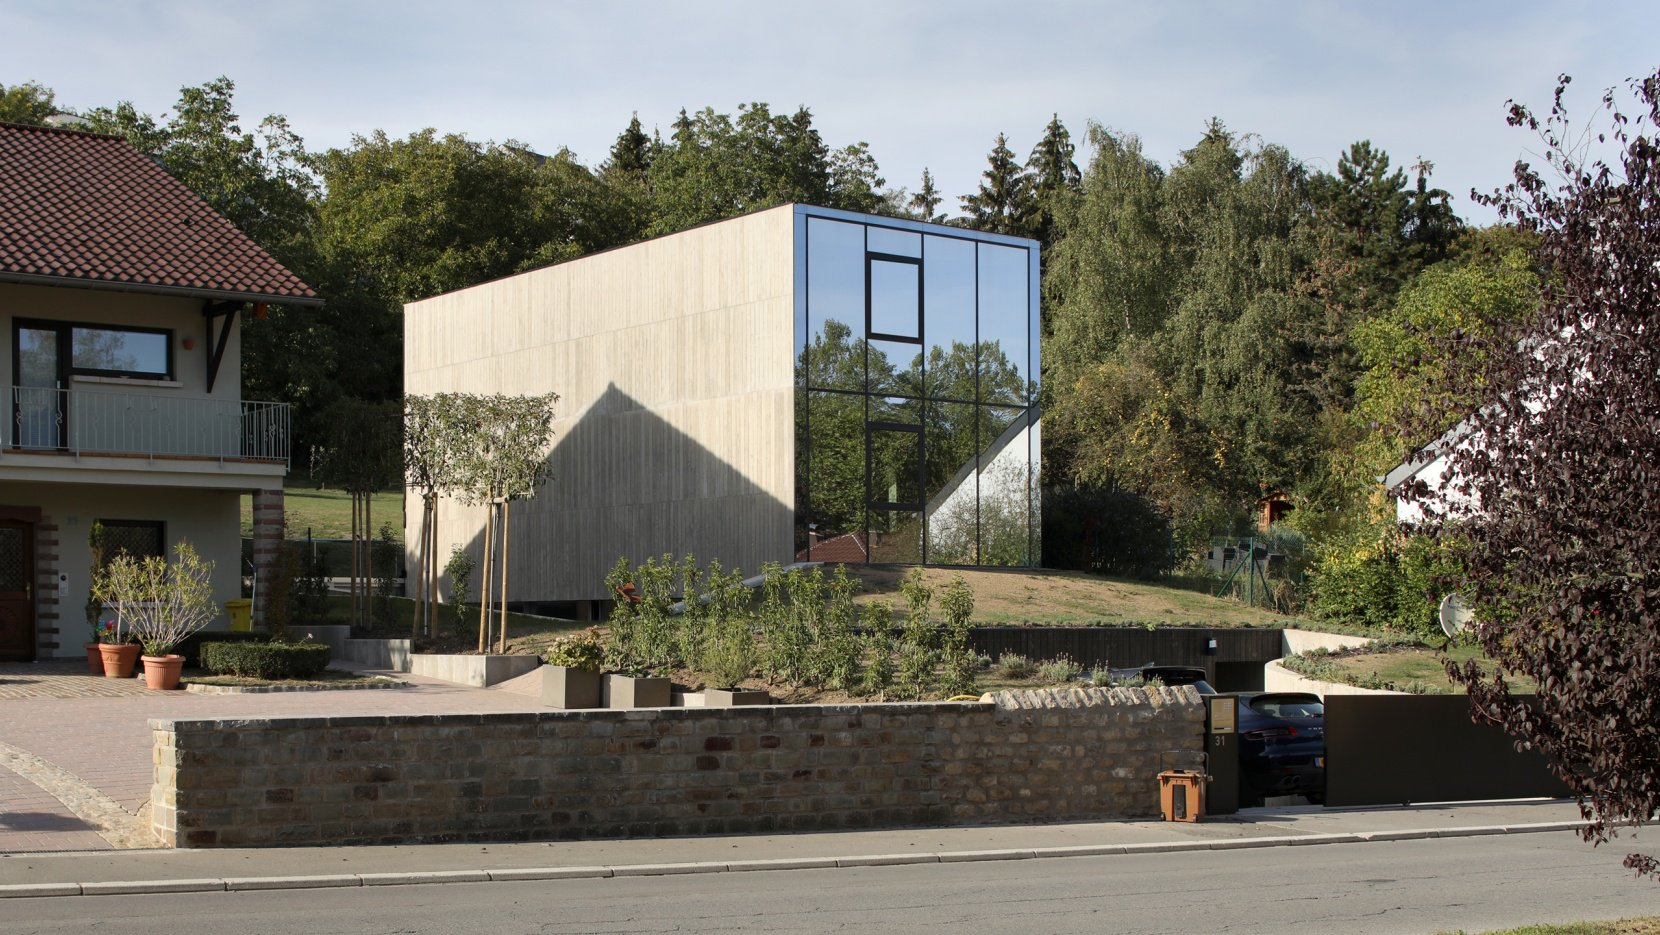 This unusual and monolith looking house features minimalist and even brutalist aesthetic